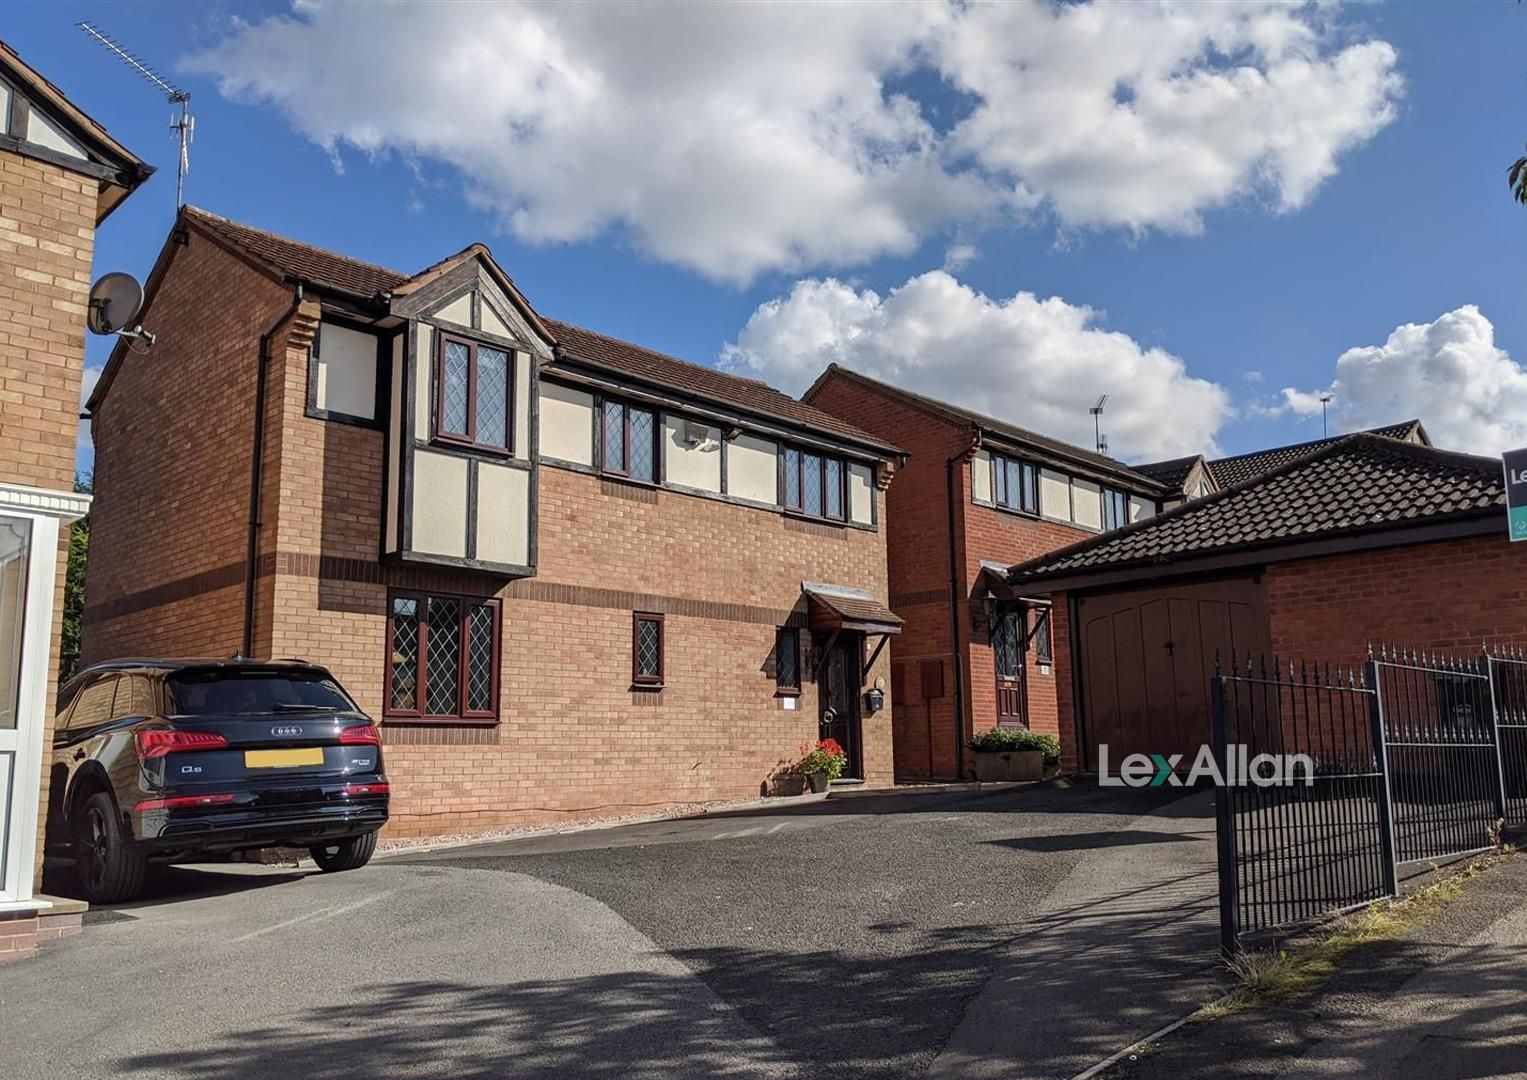 3 bed detached for sale in Amblecote, DY8